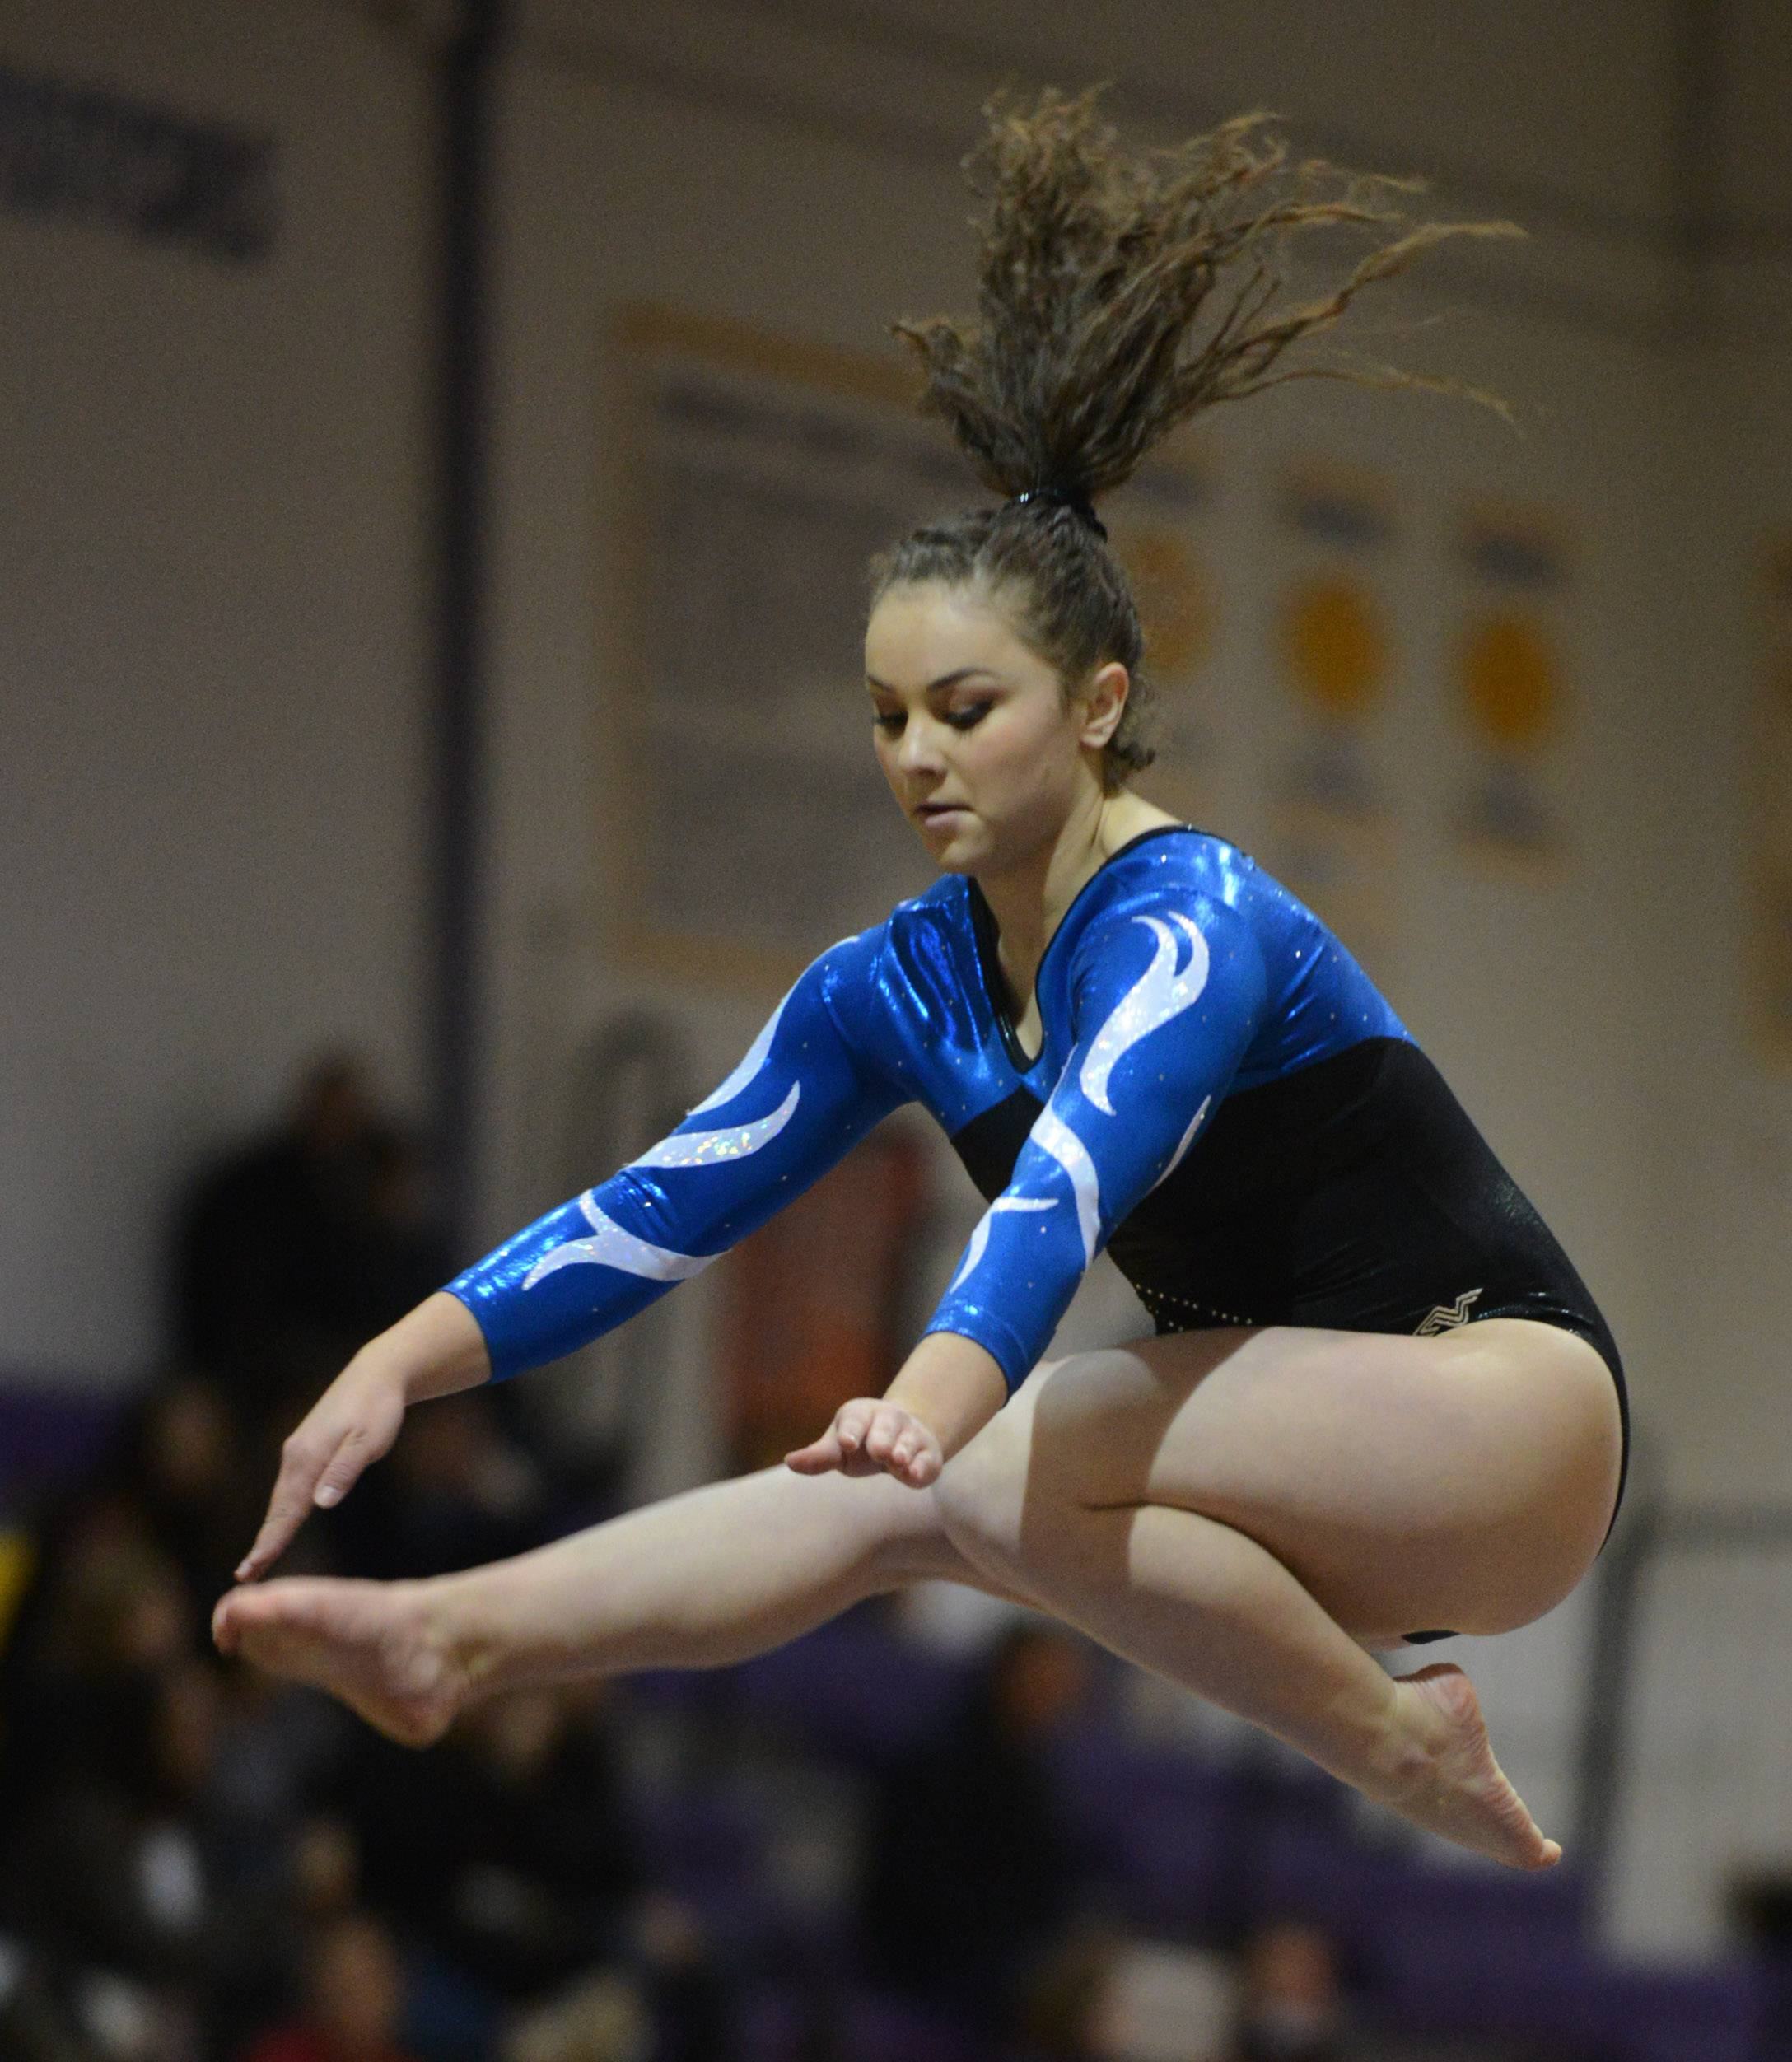 Lake Park's Katie Fetter competes on the balance beam during the Rolling Meadows invitational Saturday.